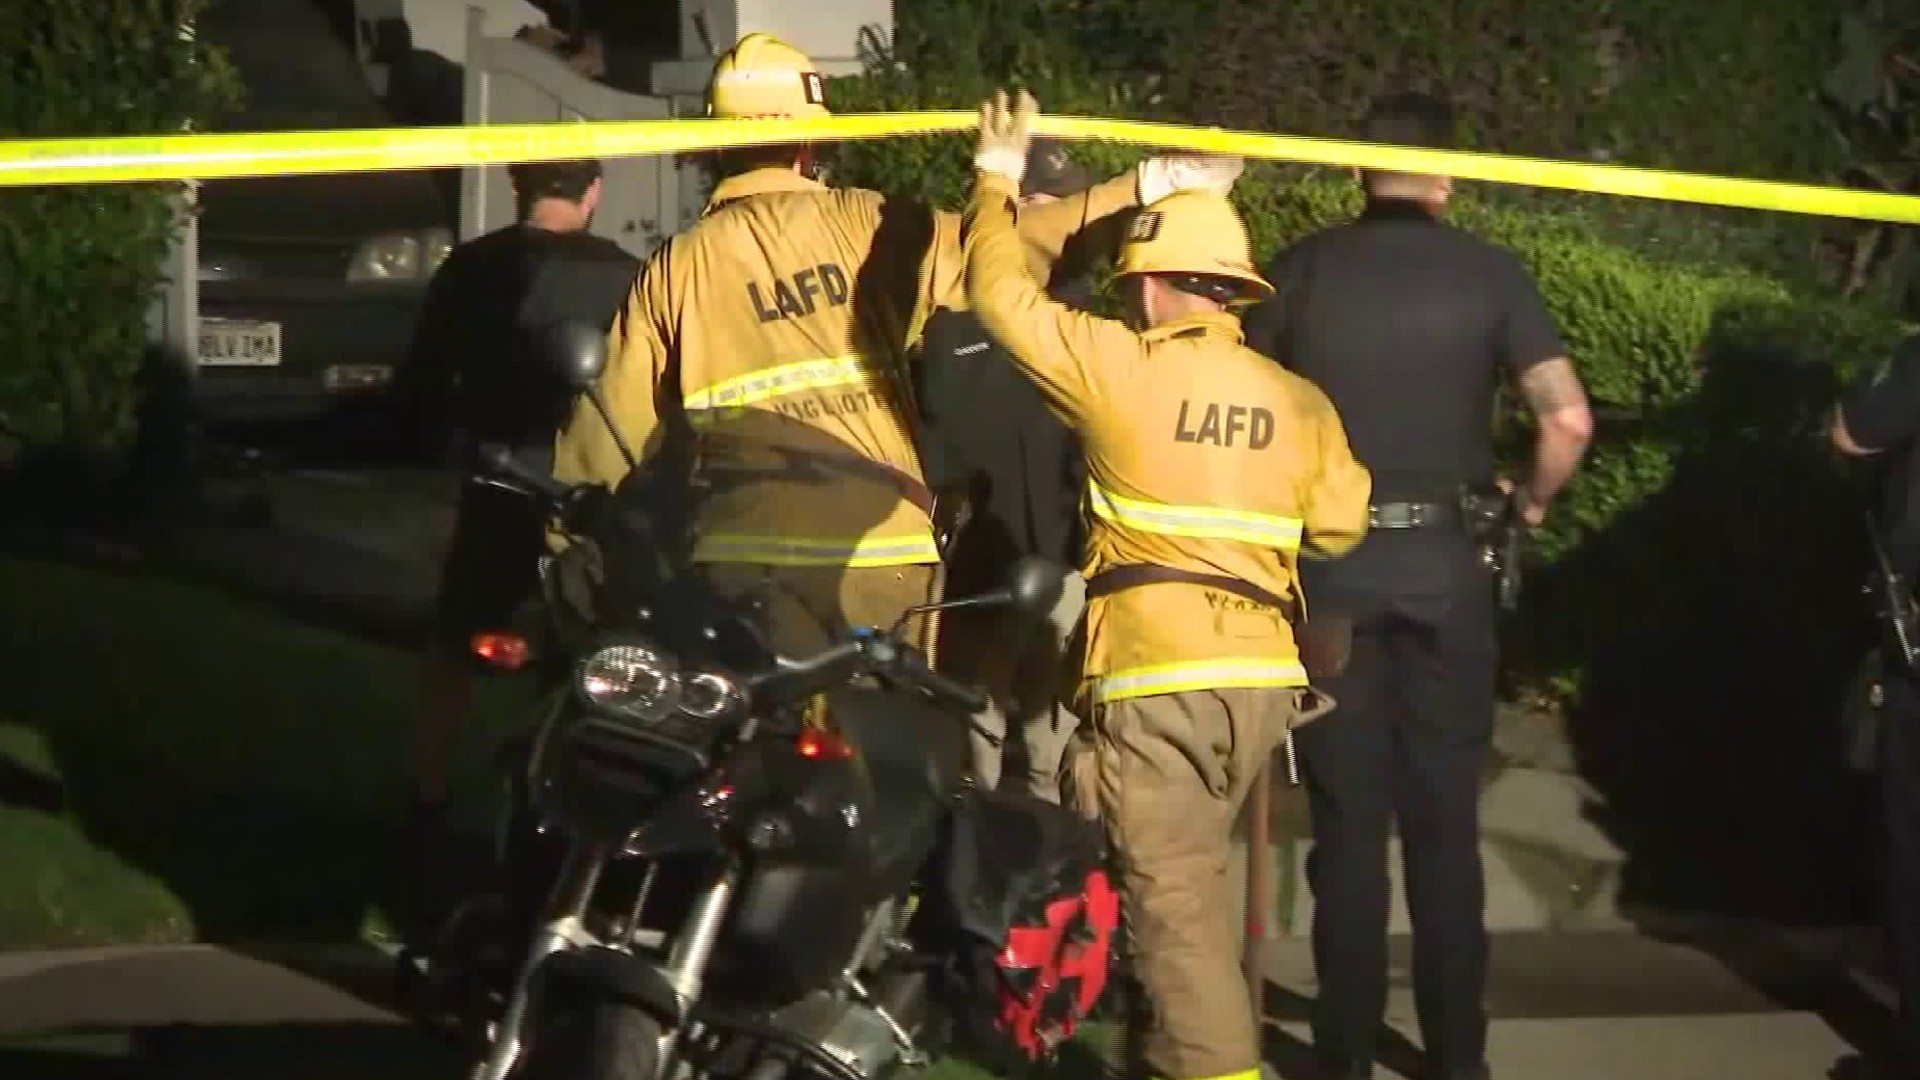 A body was discovered following a fire in the Fairfax neighborhood of Los Angeles on July 1, 2020. (KTLA)